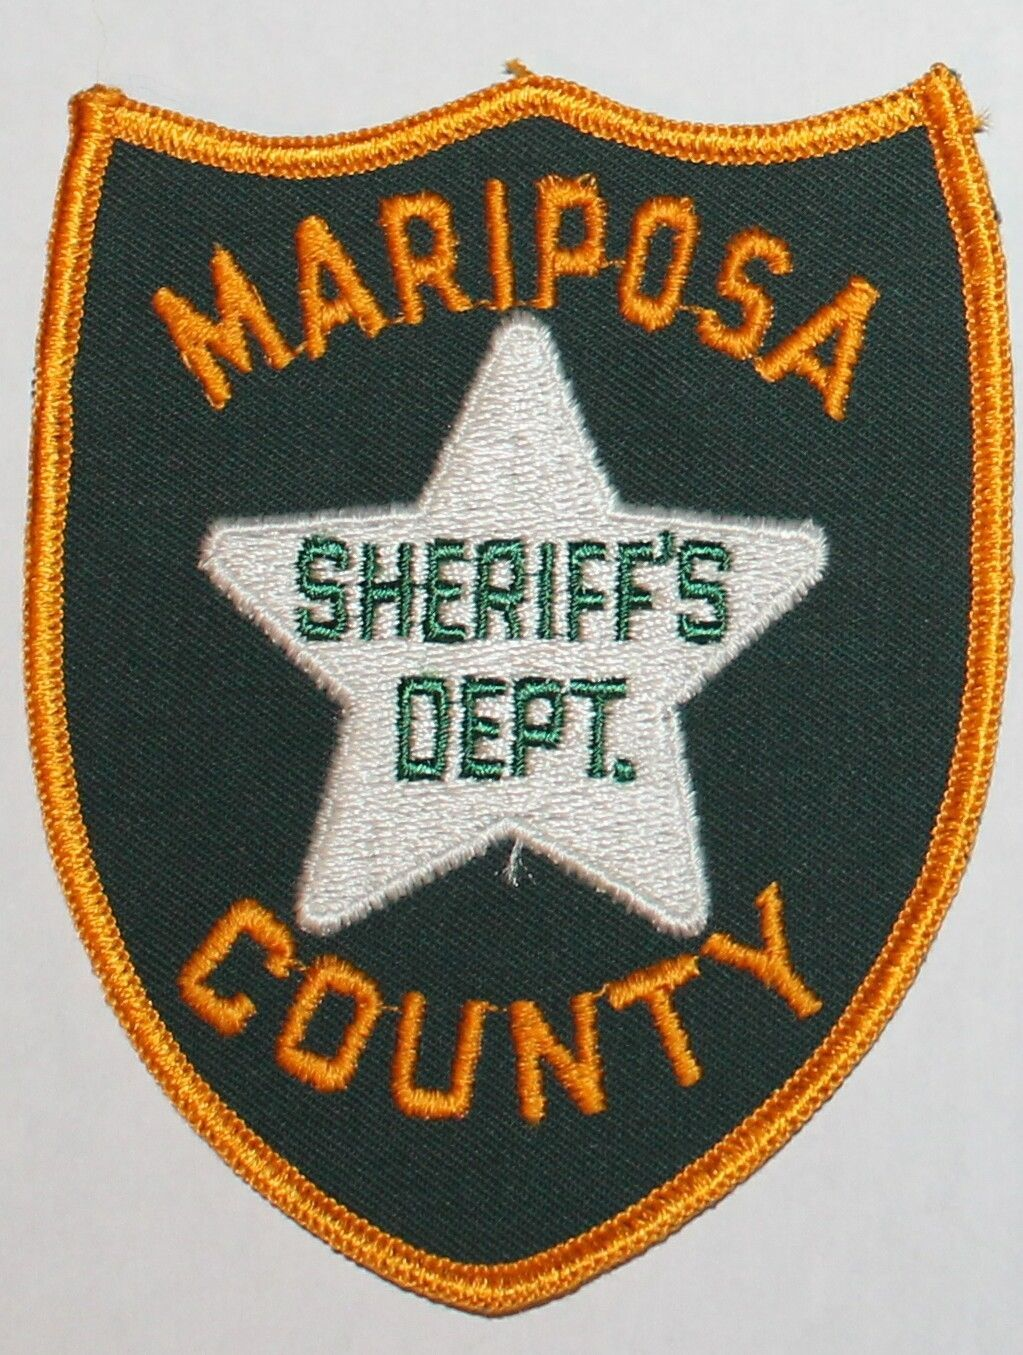 Very Old MARIPOSA COUNTY SHERIFF'S DEPT California CA SD